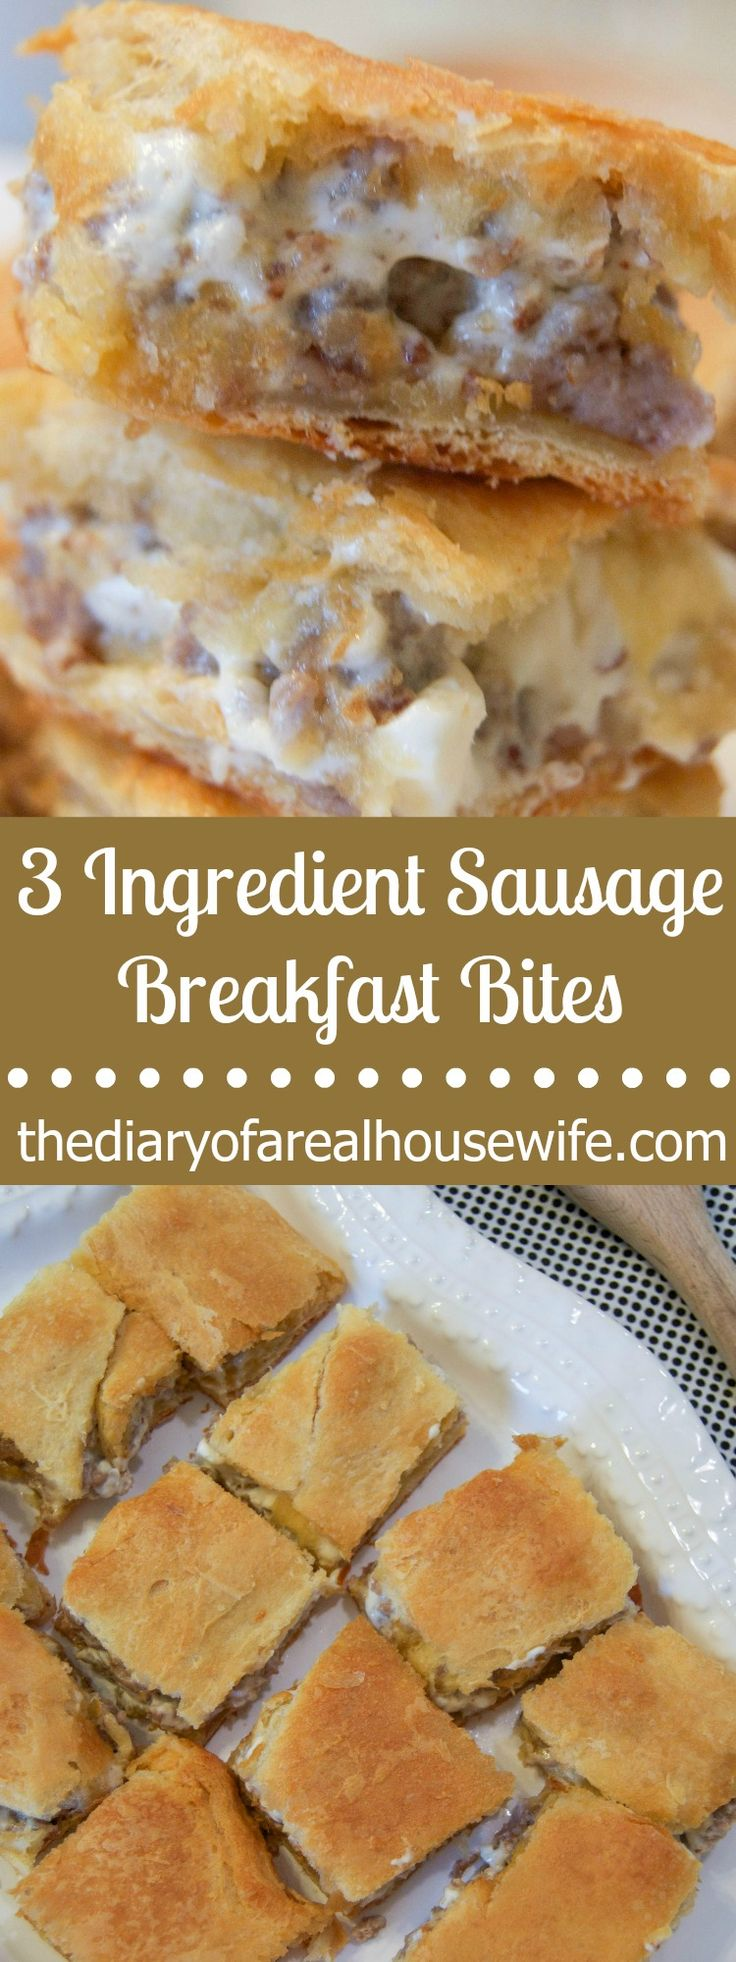 Need a super easy breakfast recipe? You have come to the right place. This 3 Ingredient Sausage Breakfast Bites is not only a super easy recipe but also tastes amazing!